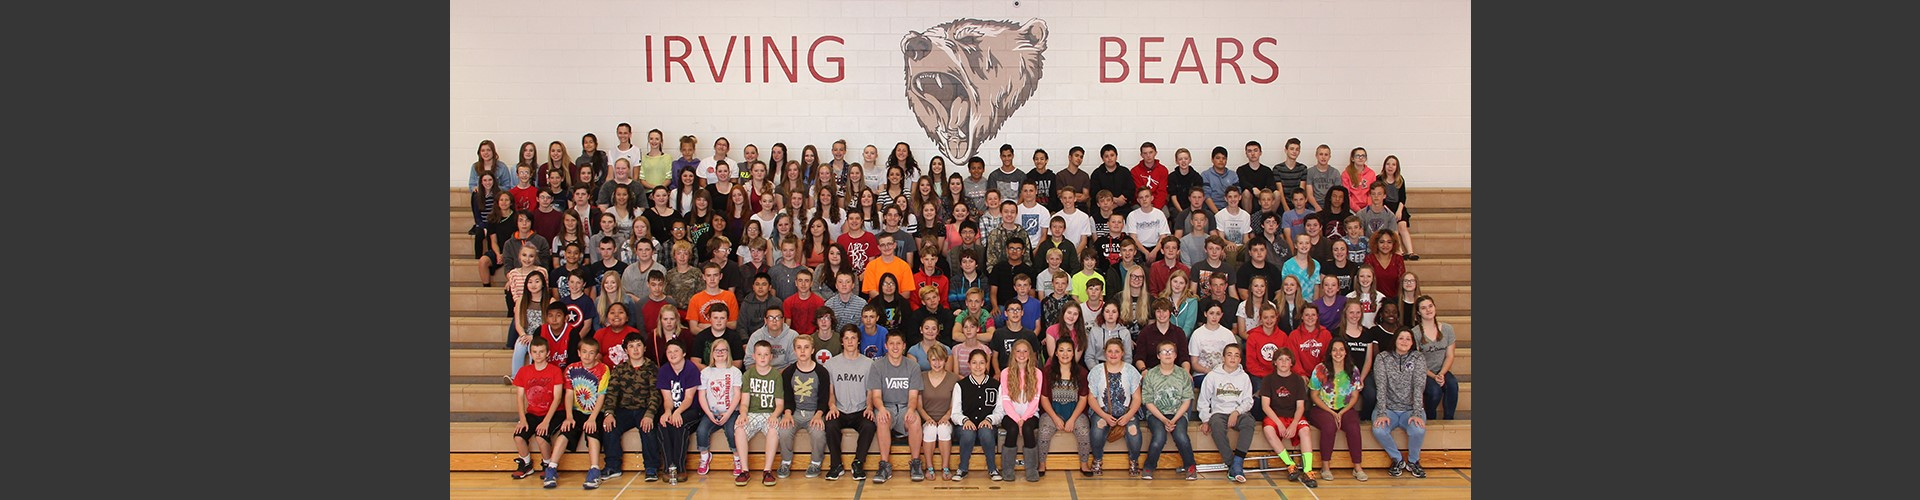 8th grade Irving Middle School students posing on bleachers under Irving Bears logo